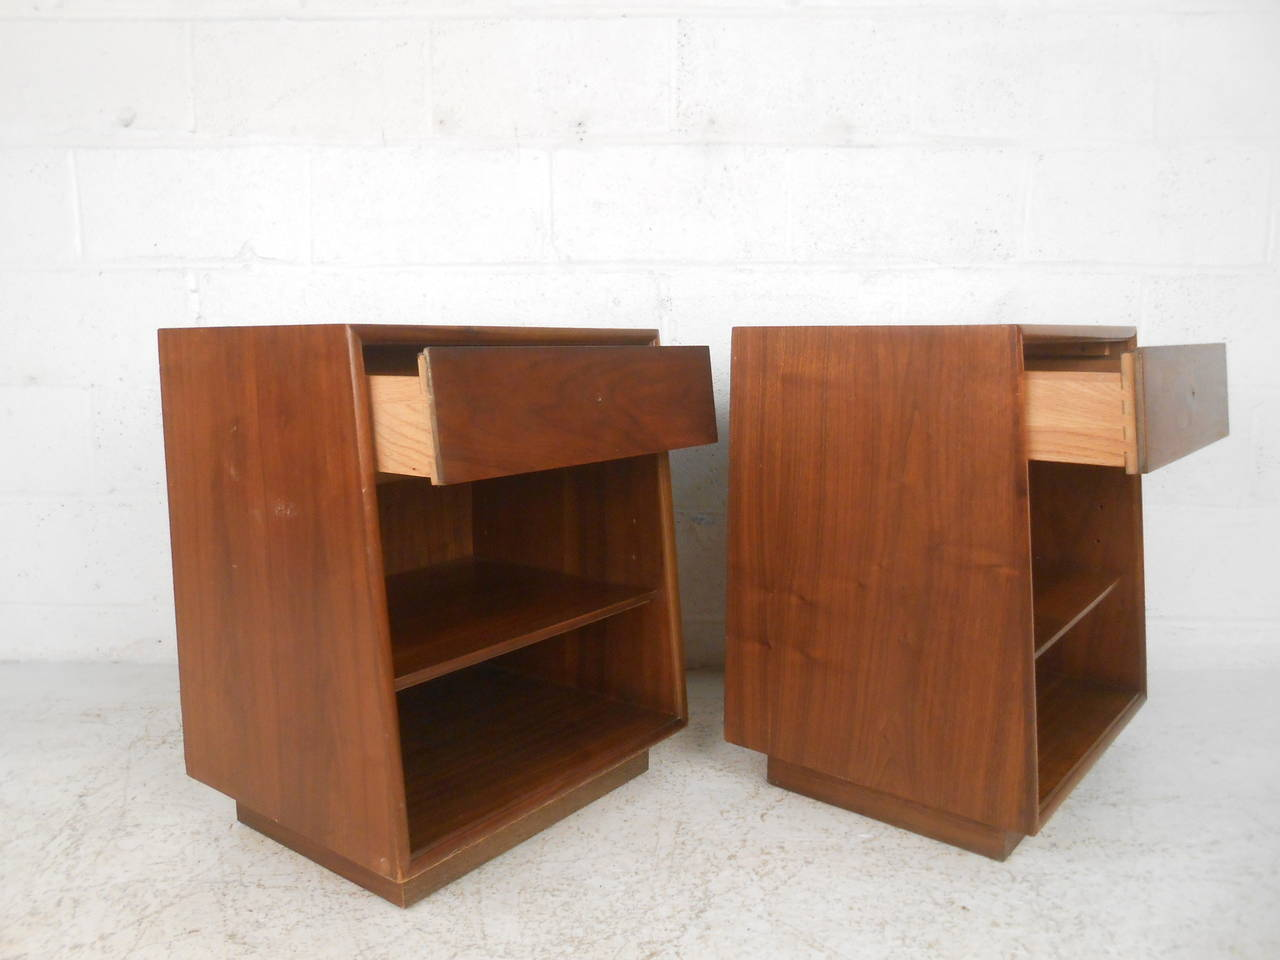 Pair of mid century modern nightstands by drexel at 1stdibs